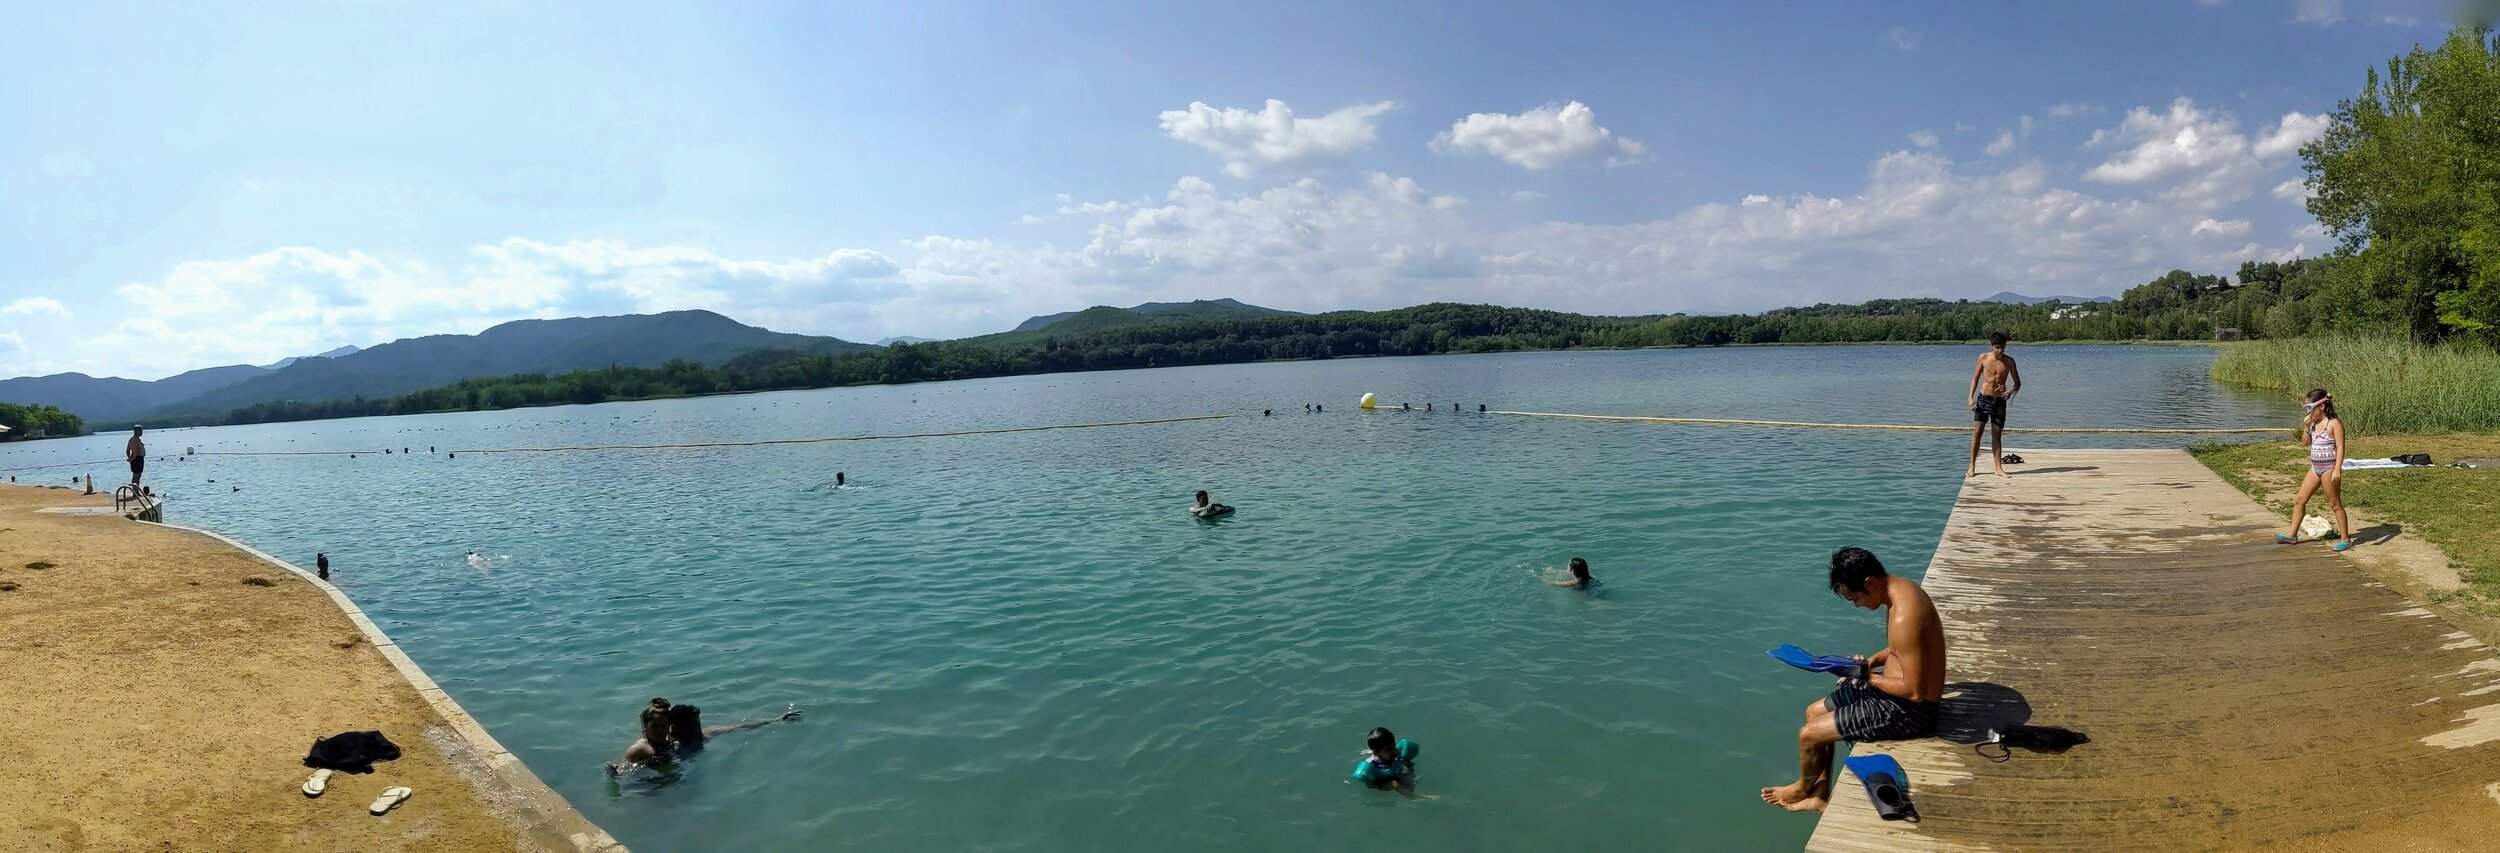 The swimming area at Caseta de Fusta with a dock for jumping. Out of frame is a shallower area with an easier entrance for littler kids.